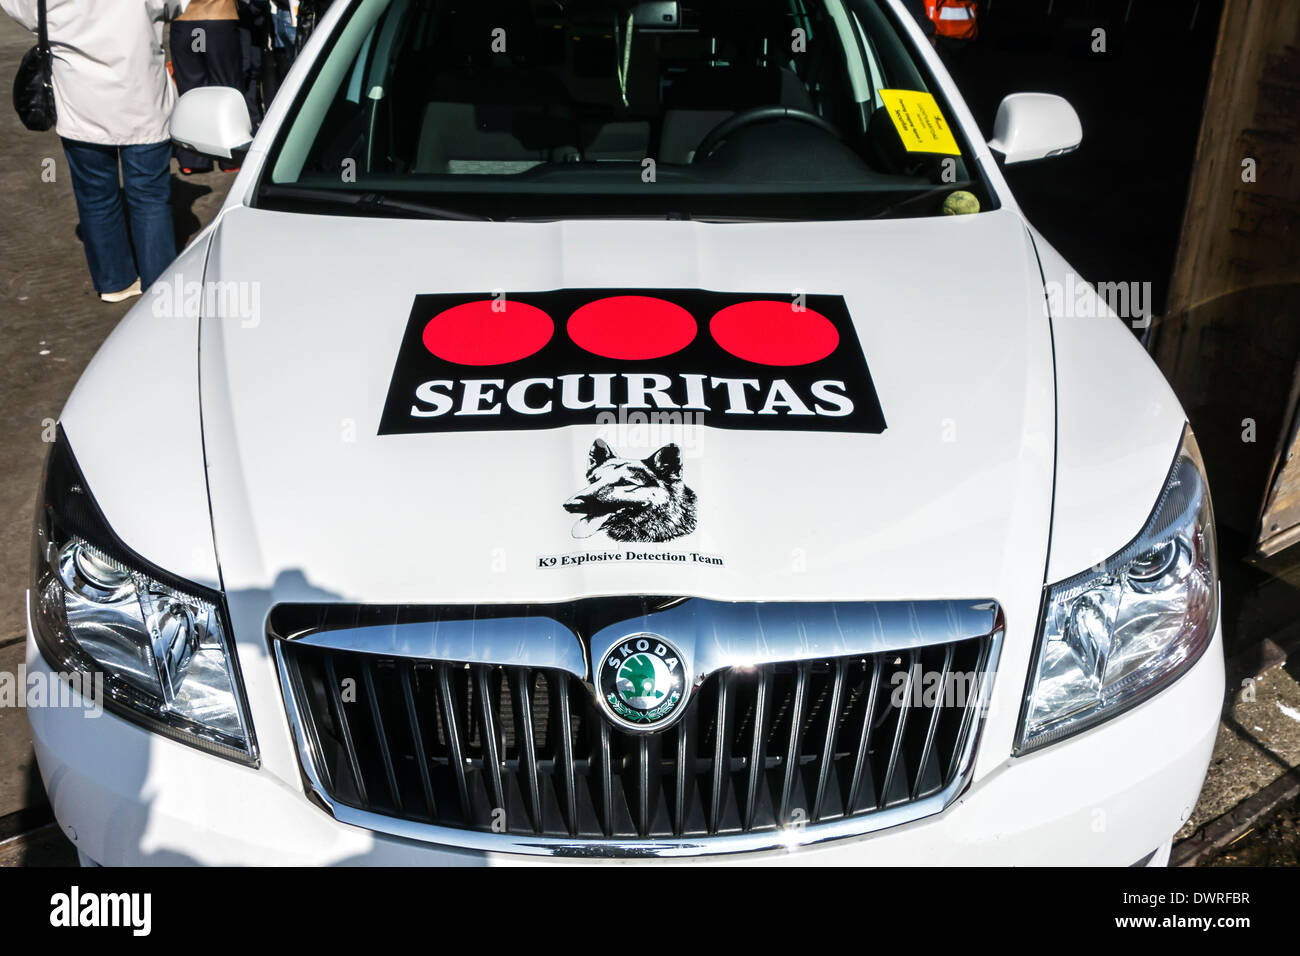 Car with logo of Securitas K9 Explosive Detection Team working with explosive-detection dogs searching for explosives and drugs - Stock Image